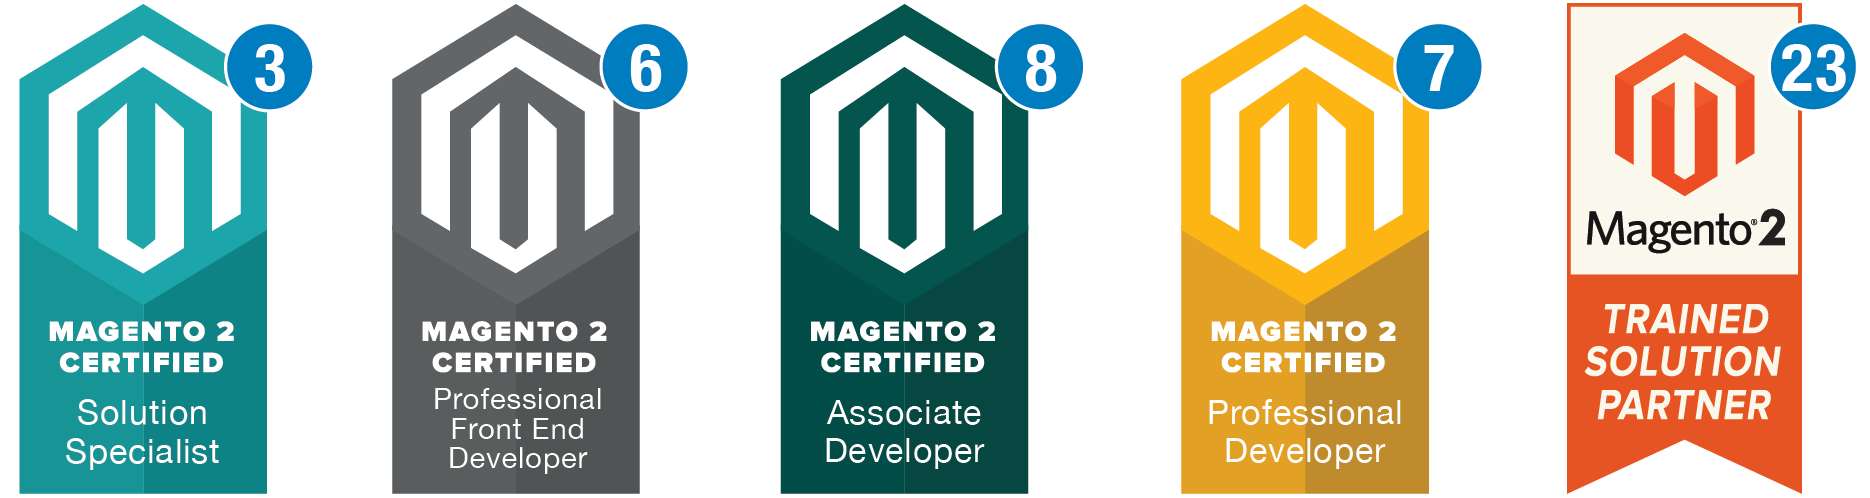 magento 2 badges-02.png